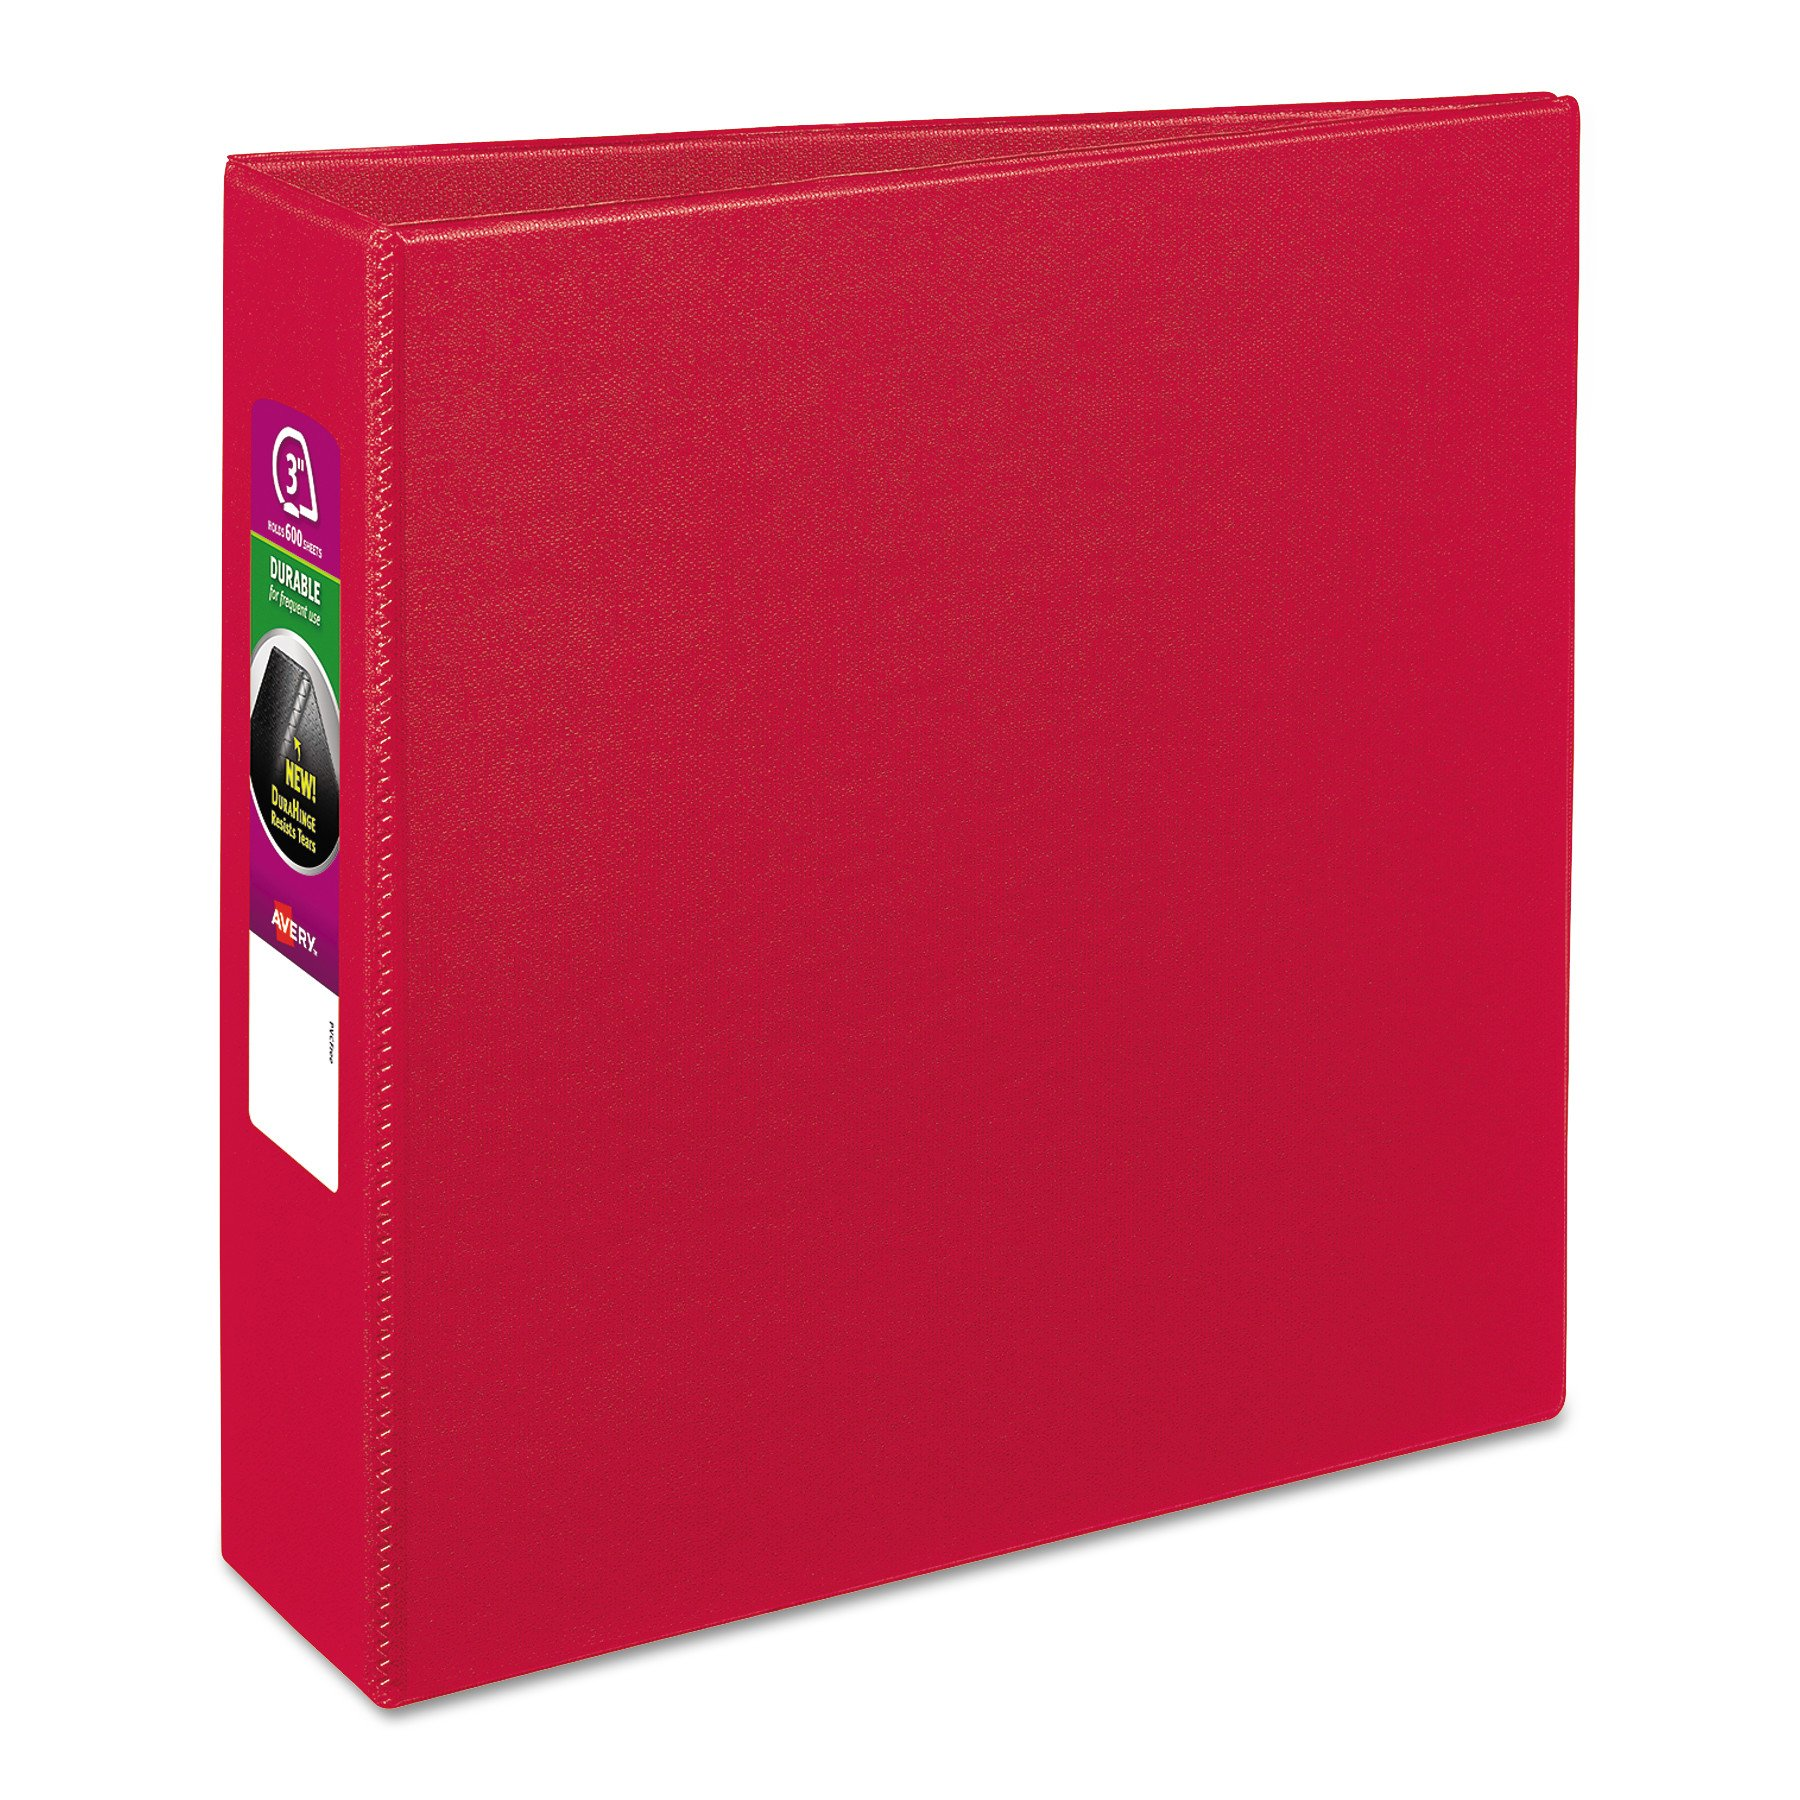 Avery 27204 Durable Binder with Slant Rings, 11 x 8 1/2, 3'', Red